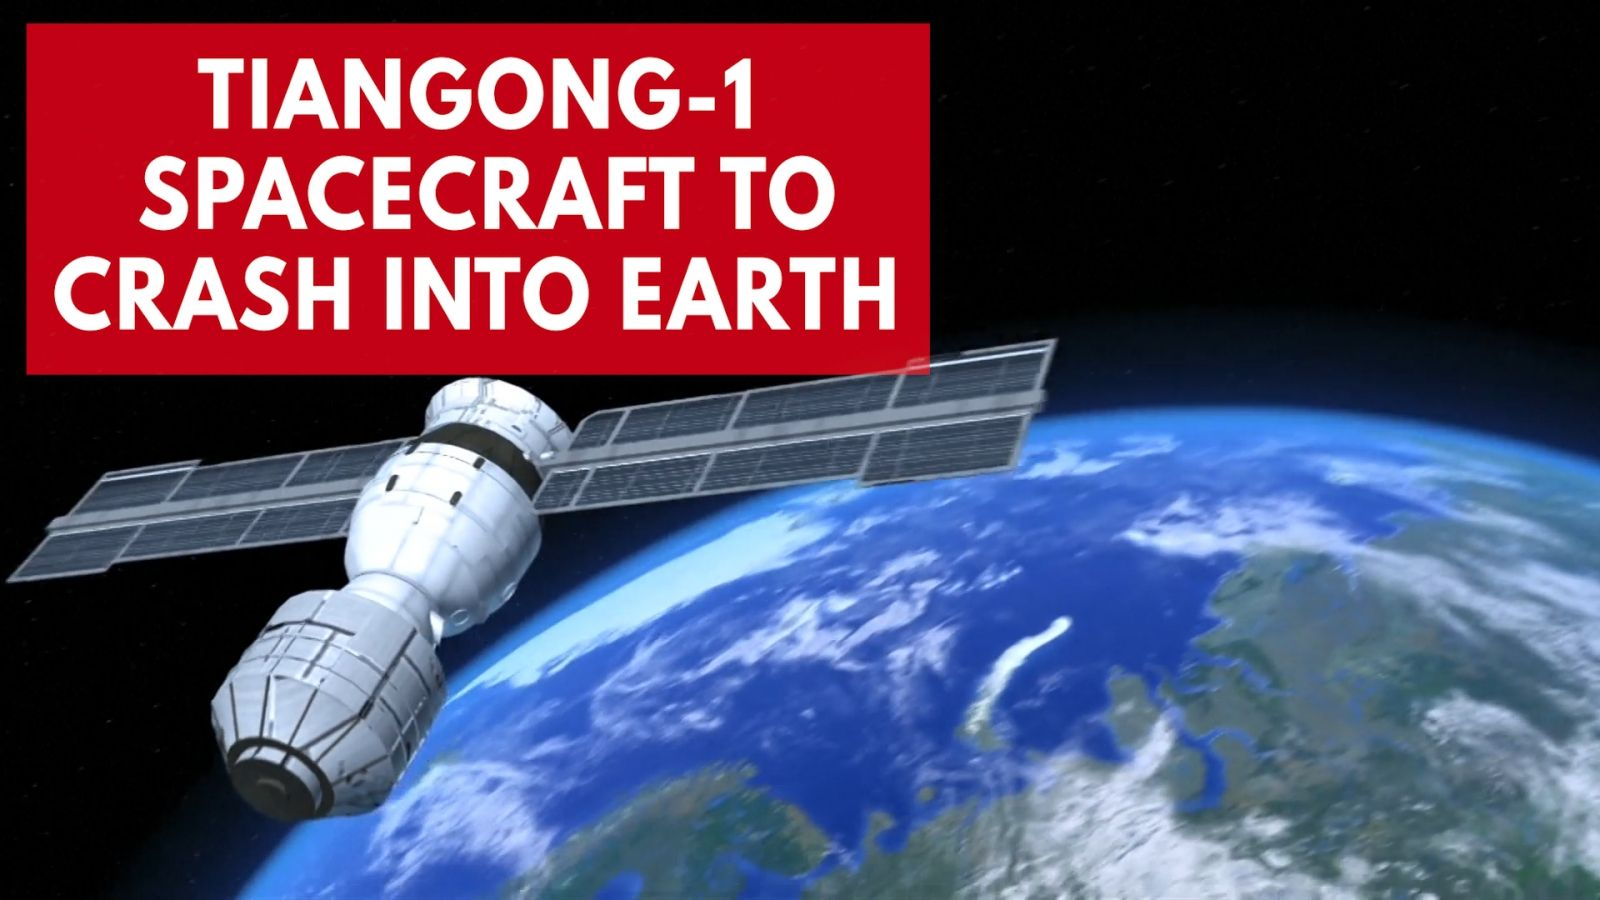 chinas-tiangong-1-space-station-to-crash-land-into-earth